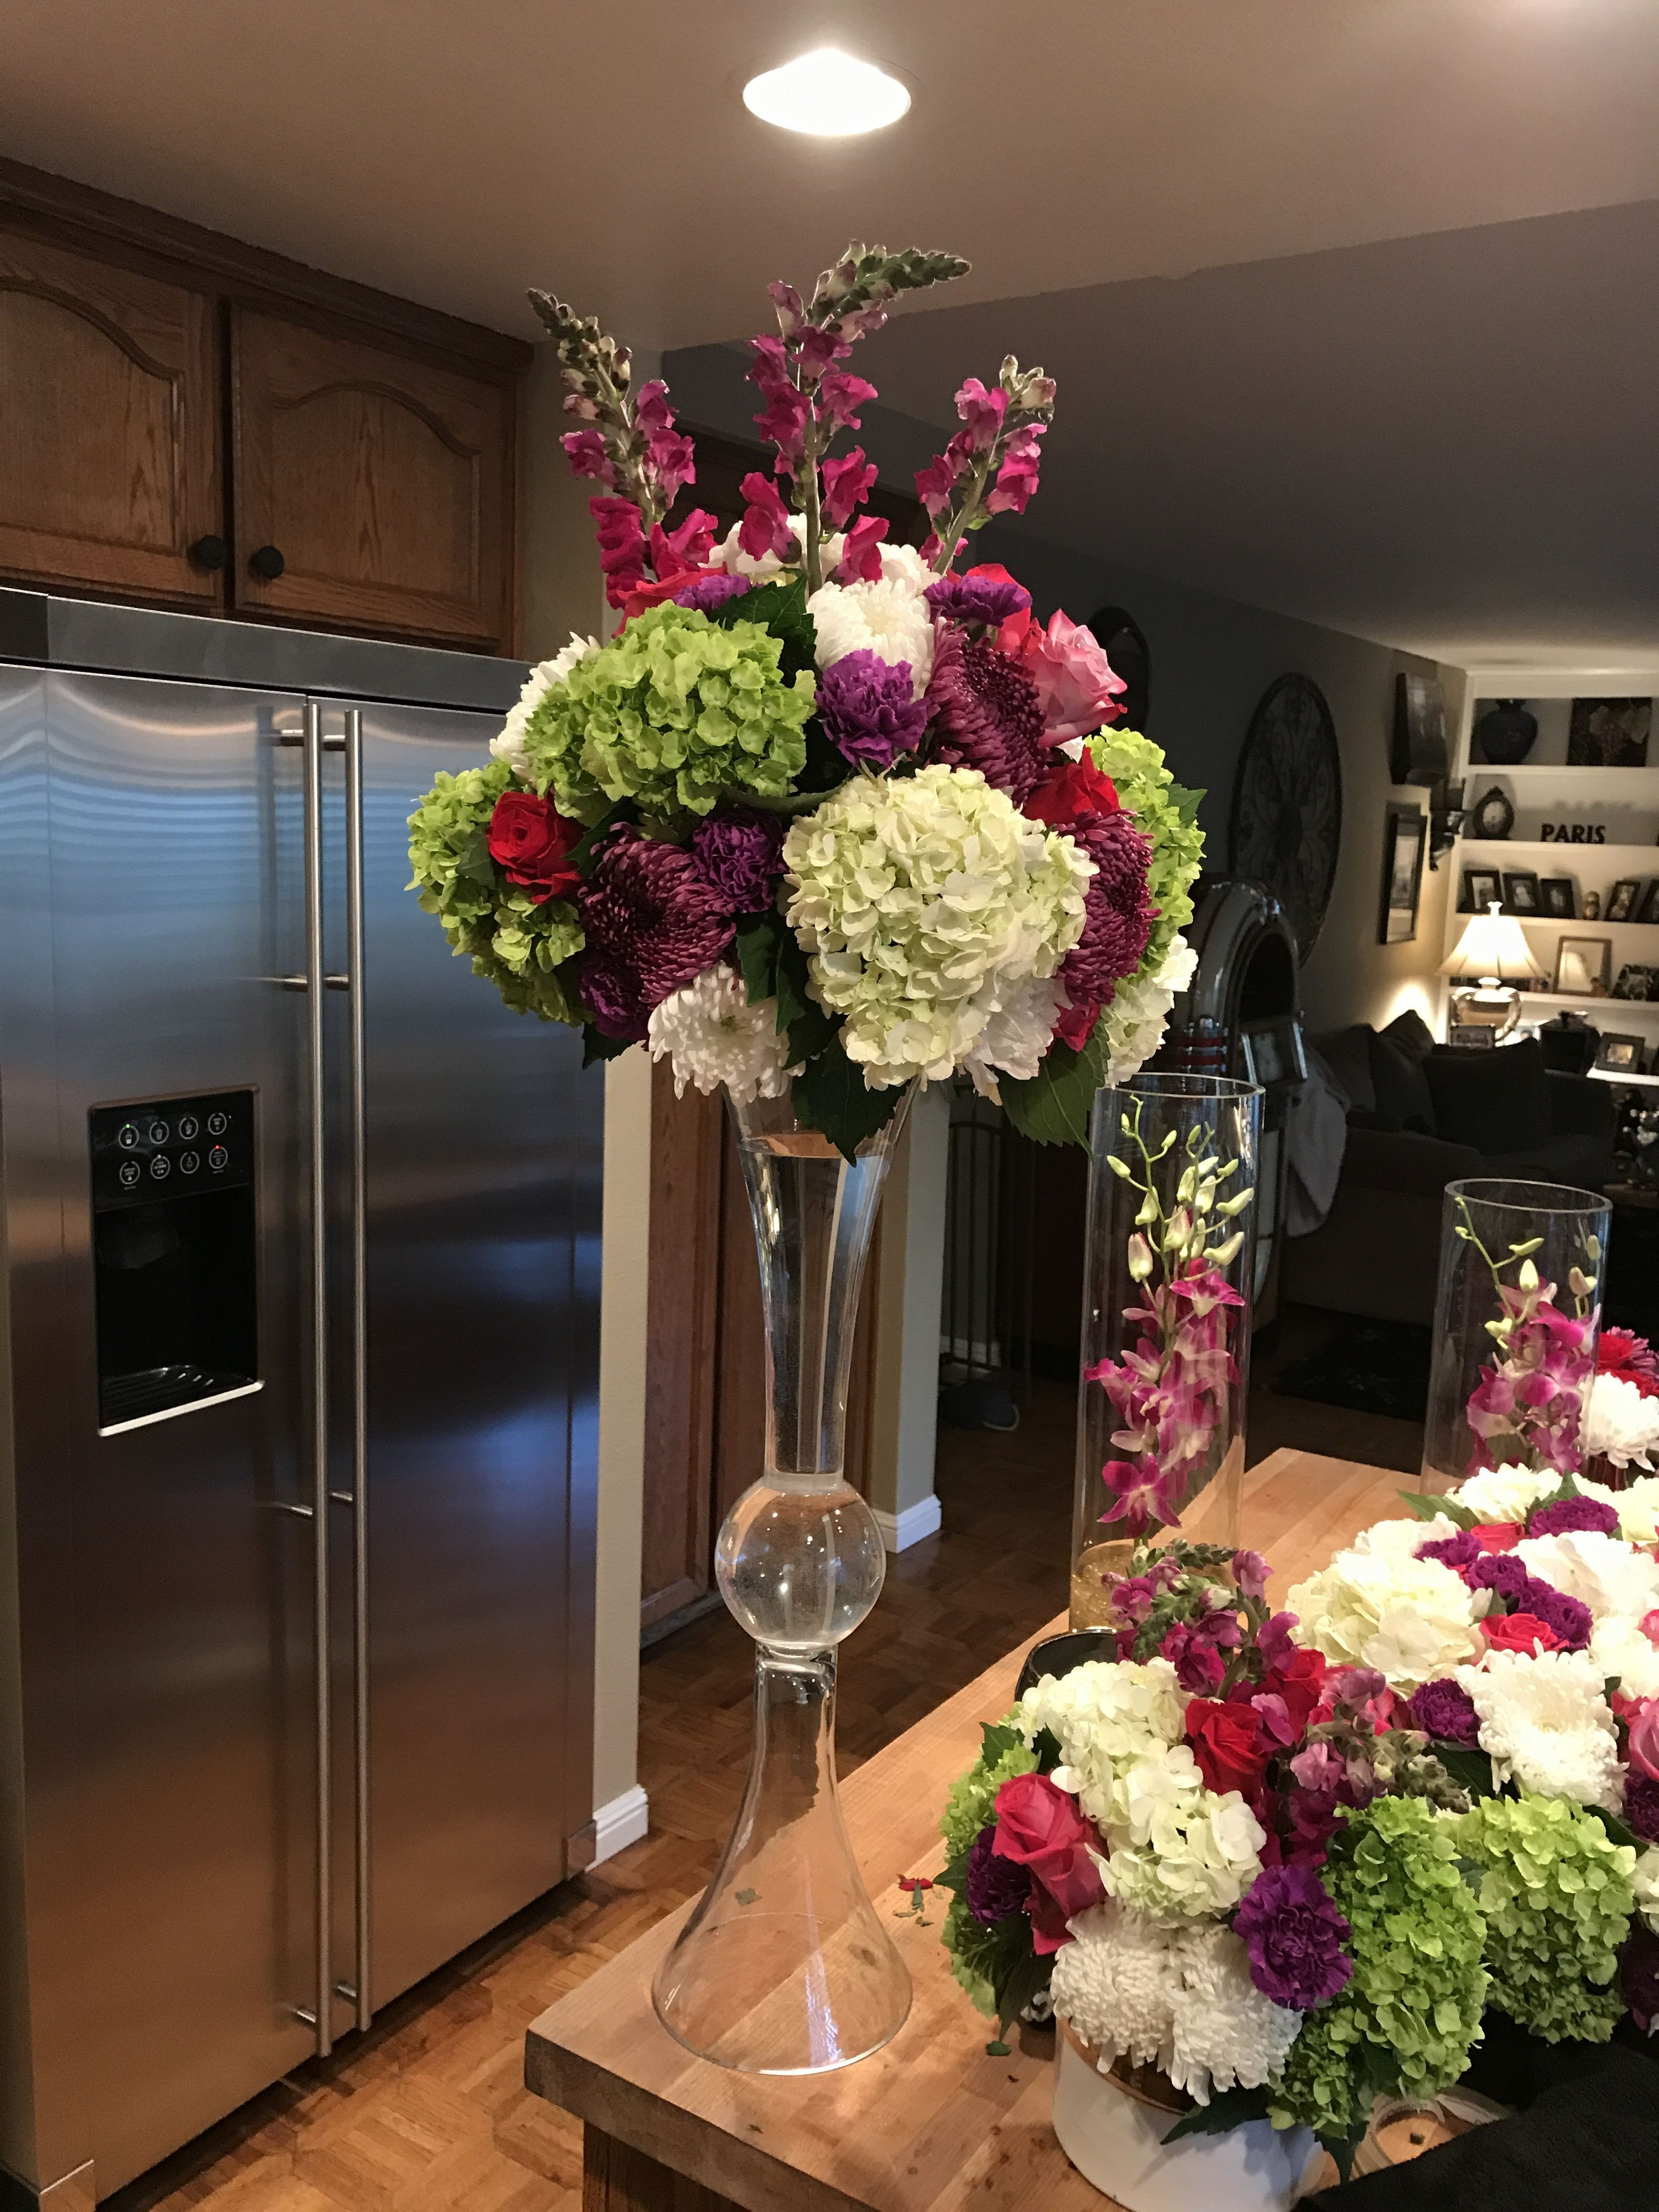 32 inch vases wholesale of 24 tall vases for sale the weekly world with colorful tall centerpiece in trumpet vase